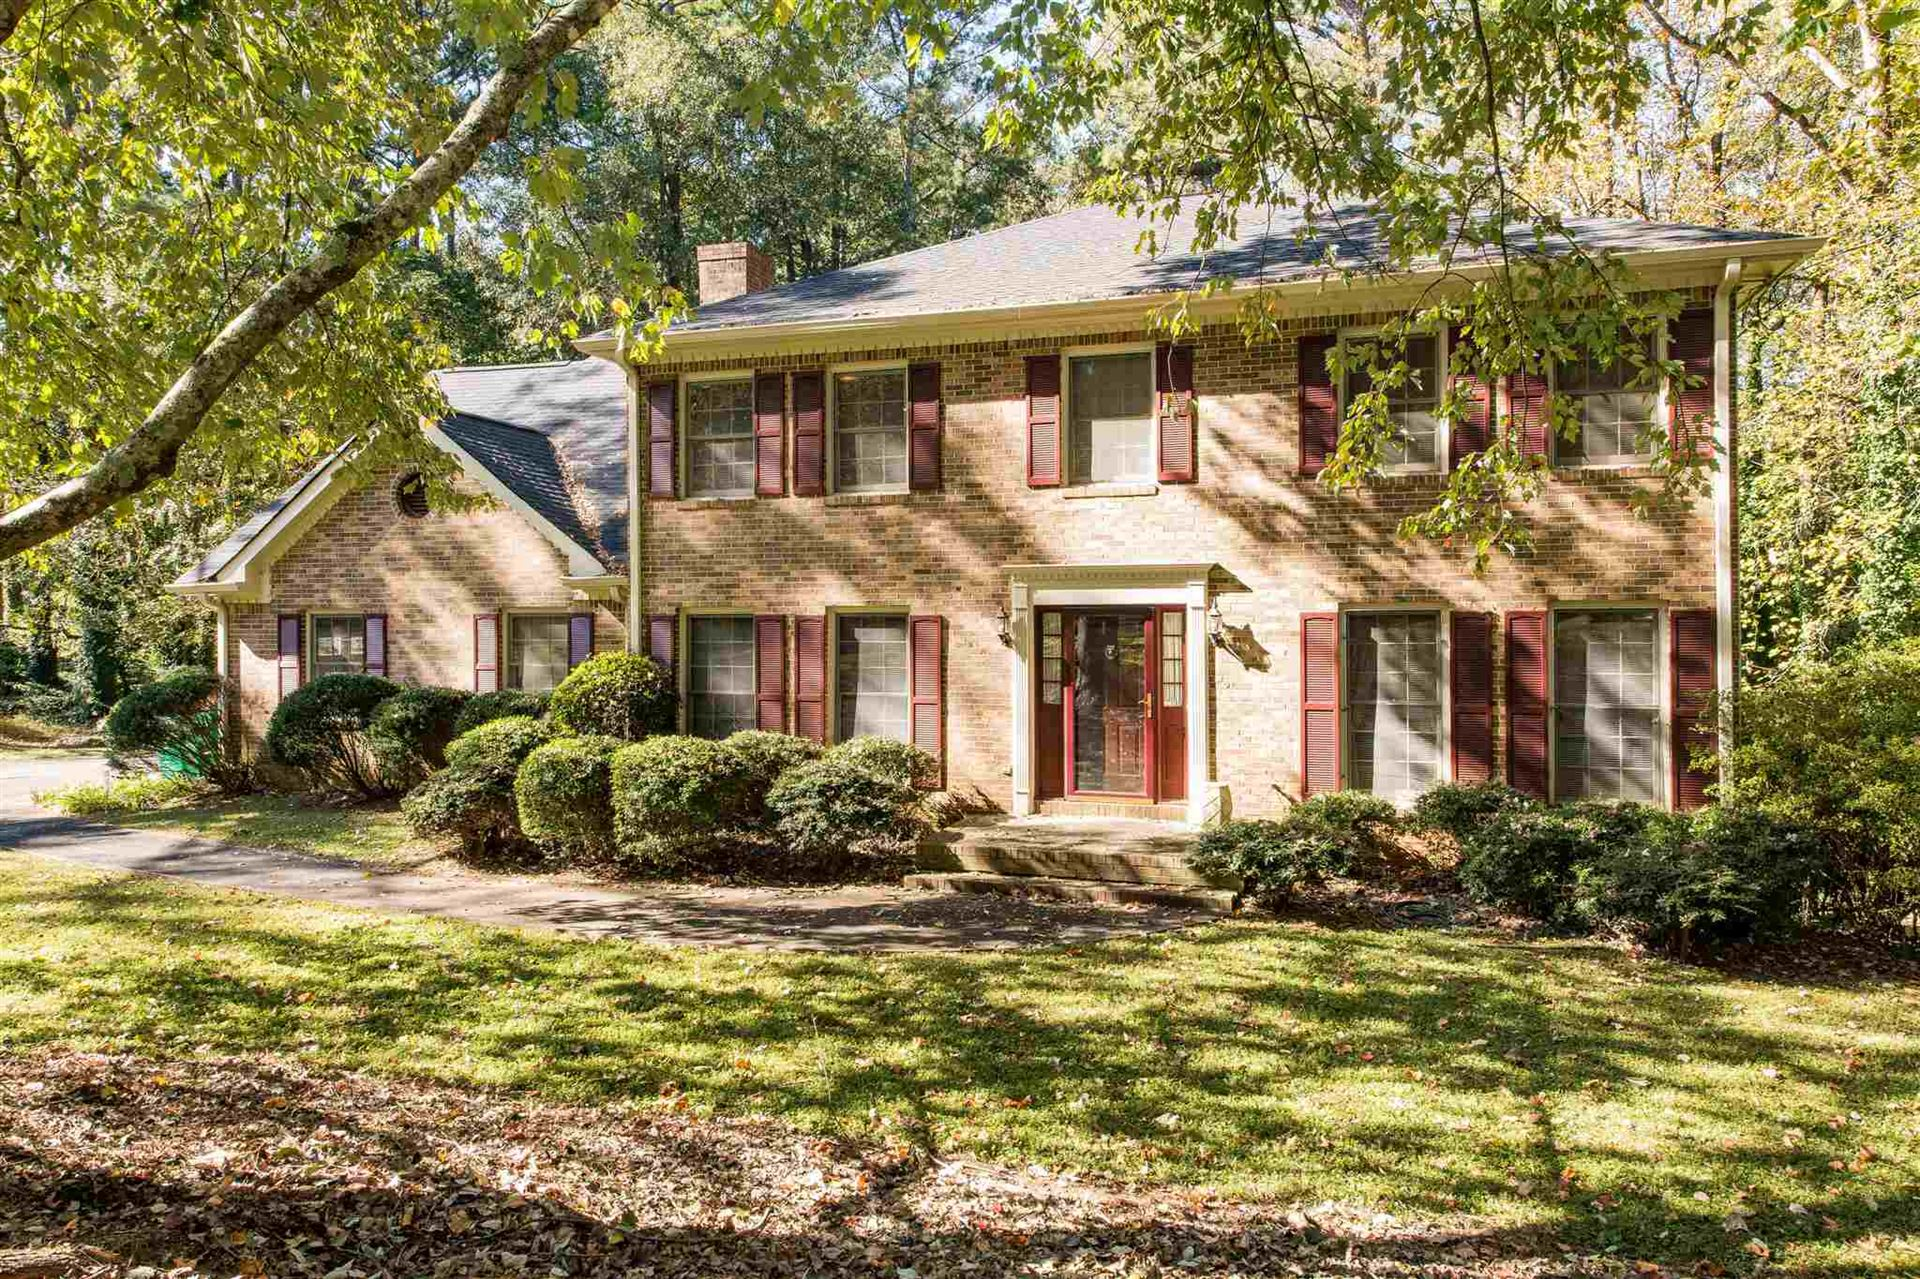 1594 Howell Highlands Dr, Stone Mountain, GA 30087 - MLS#: 8883333